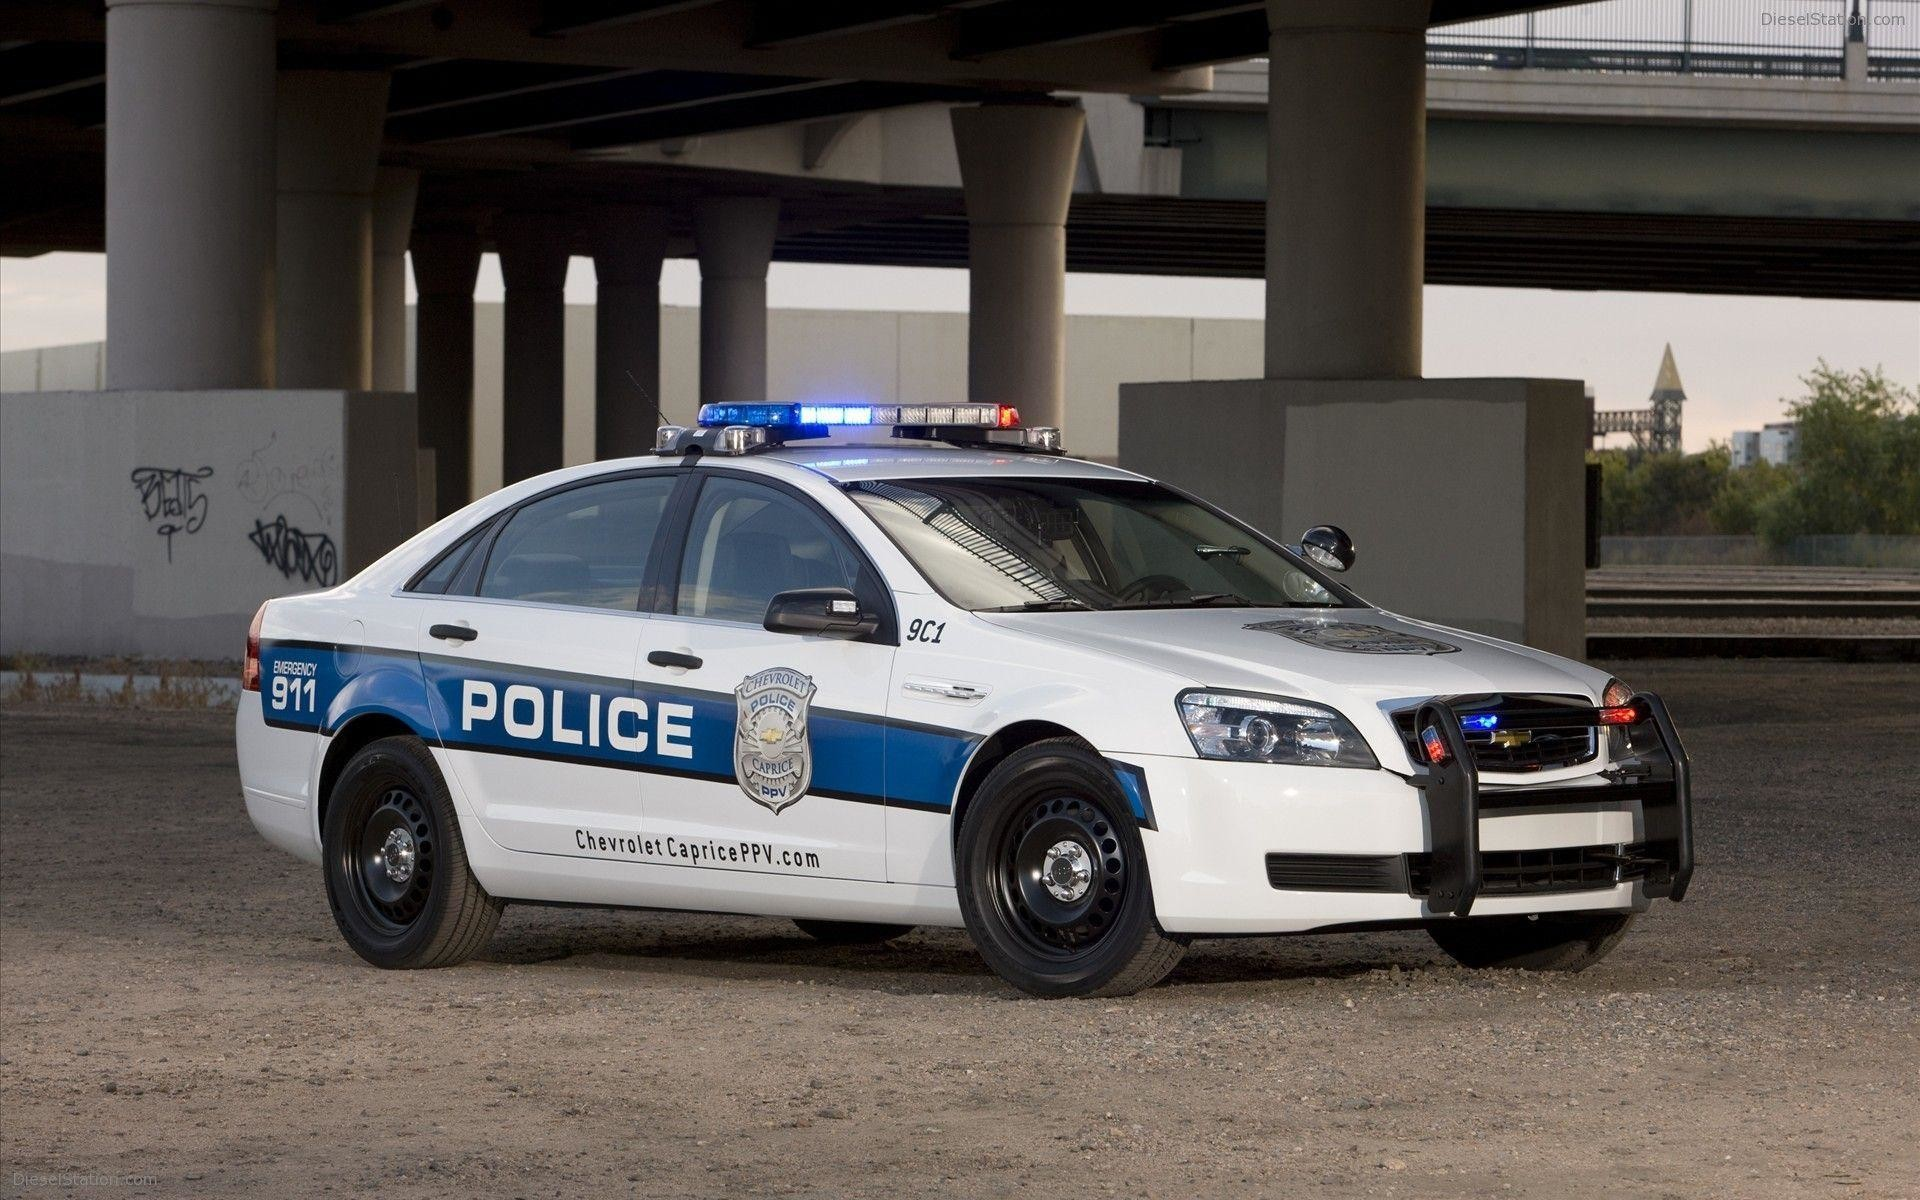 1920x1200 Us police car wallpaper | Wallpapers wide cars